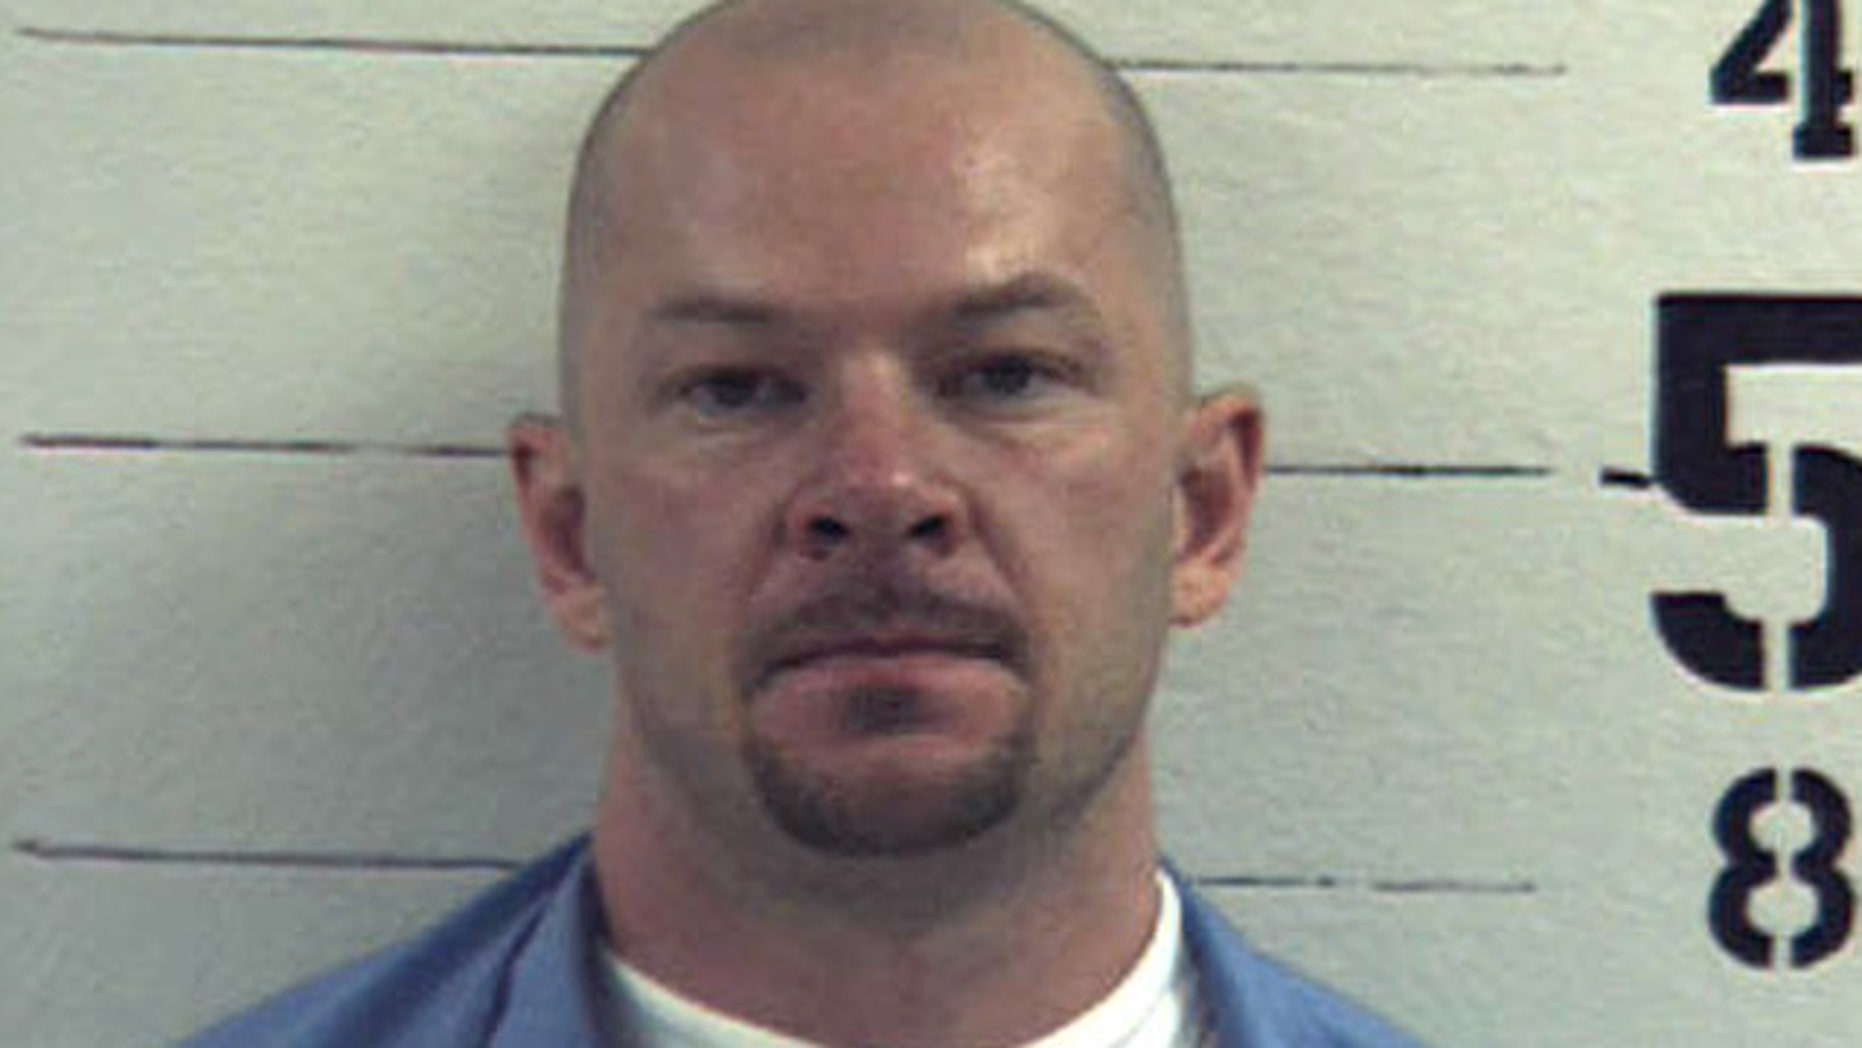 David Glenn Hobson escaped Dec. 1, 2011, from a New Hampshire prison and is thought to be armed and dangerous.